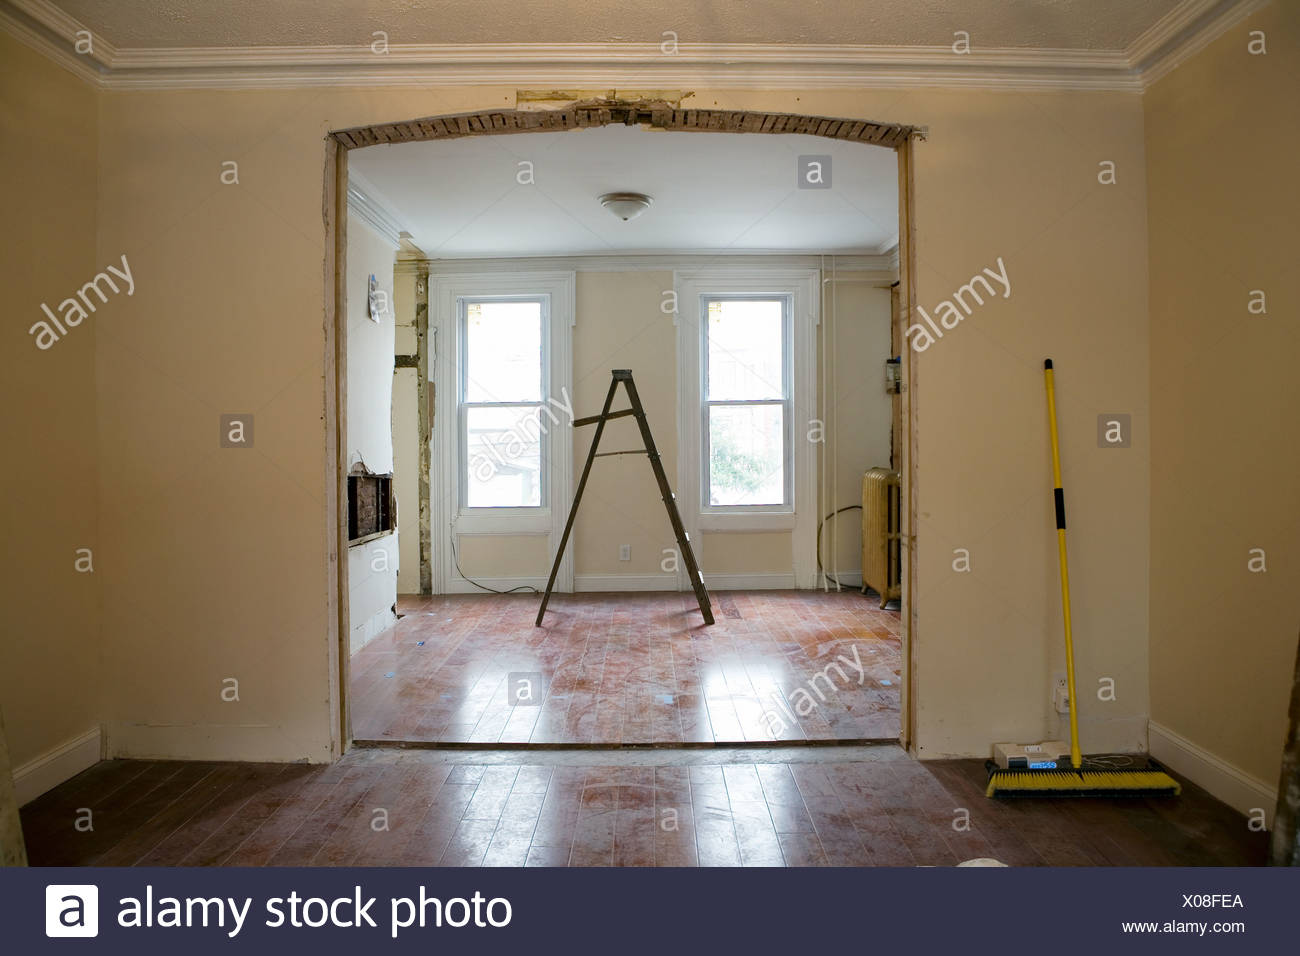 Open plan room with stepladders - Stock Image